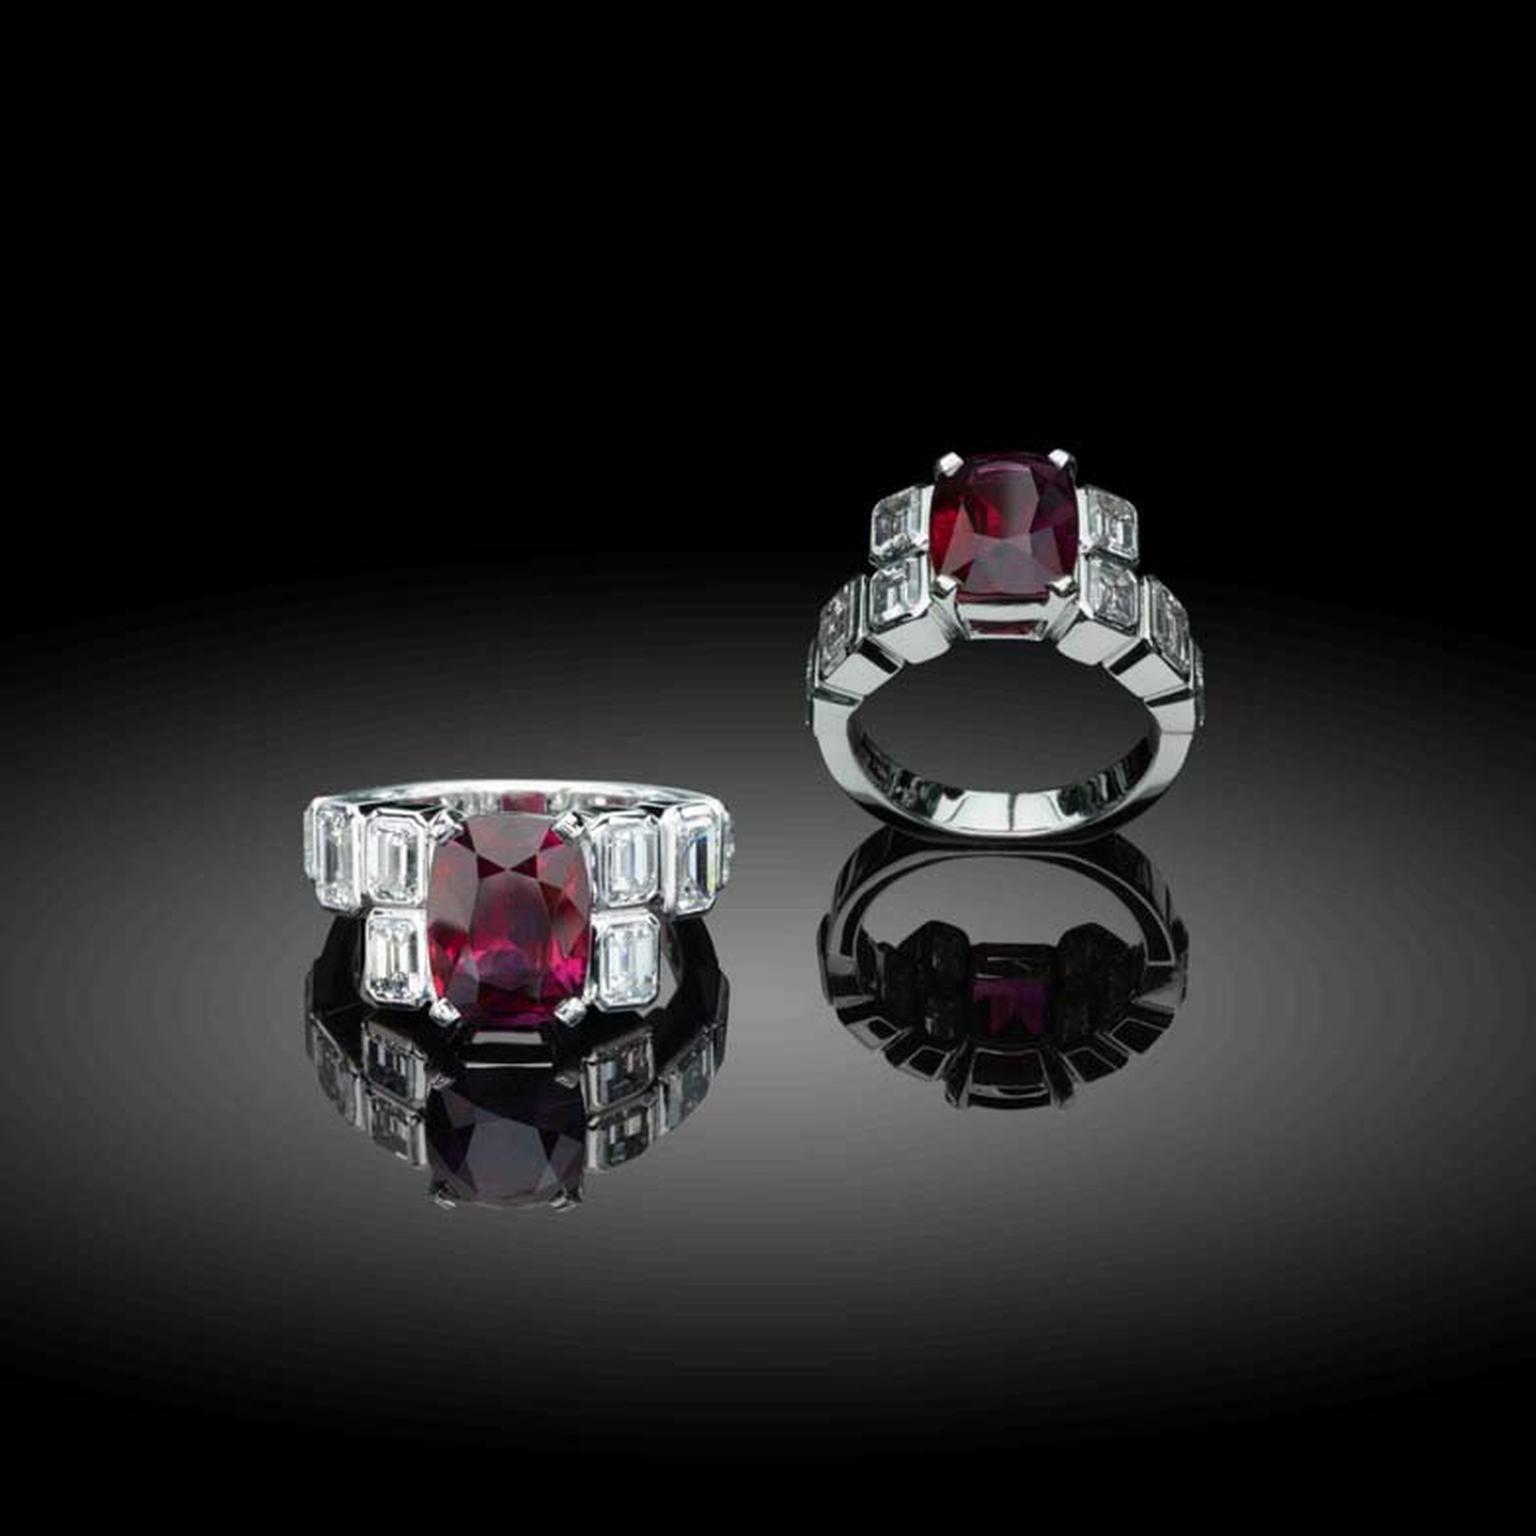 r white gold jewels j s grade product mens men ring fullxfull african gem cocktail checkerboard diamond il amethyst